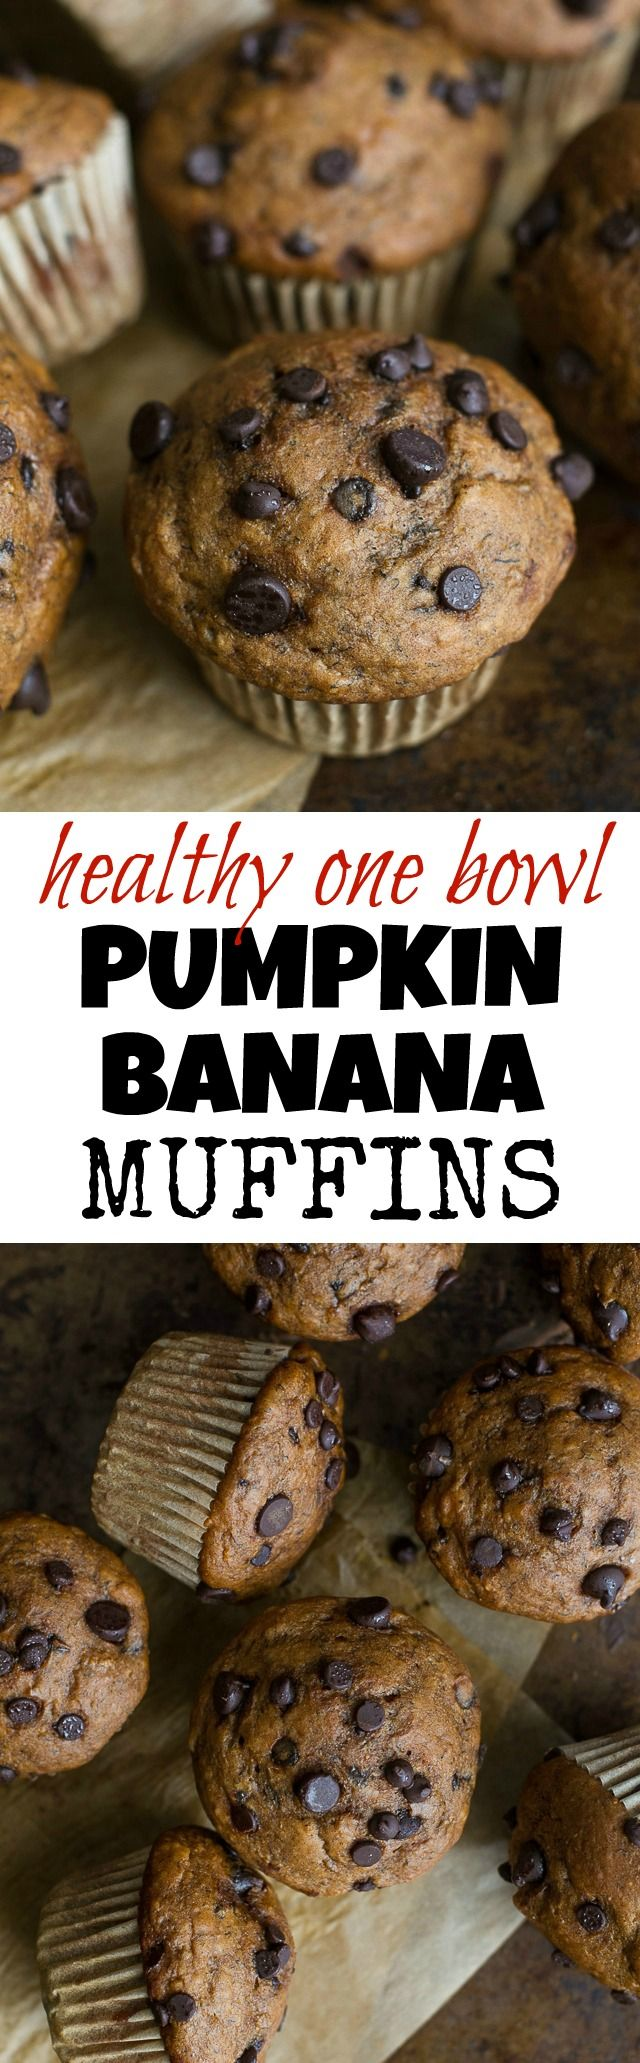 One Bowl Pumpkin Banana Muffins to help you use up overripe bananas and leftover canned pumpkin! Not quite pumpkin muffins, not quite banana muffins, they combine hints of both to create healthy muffins that are naturally sweetened and loaded with flavour | runningwithspoons.com